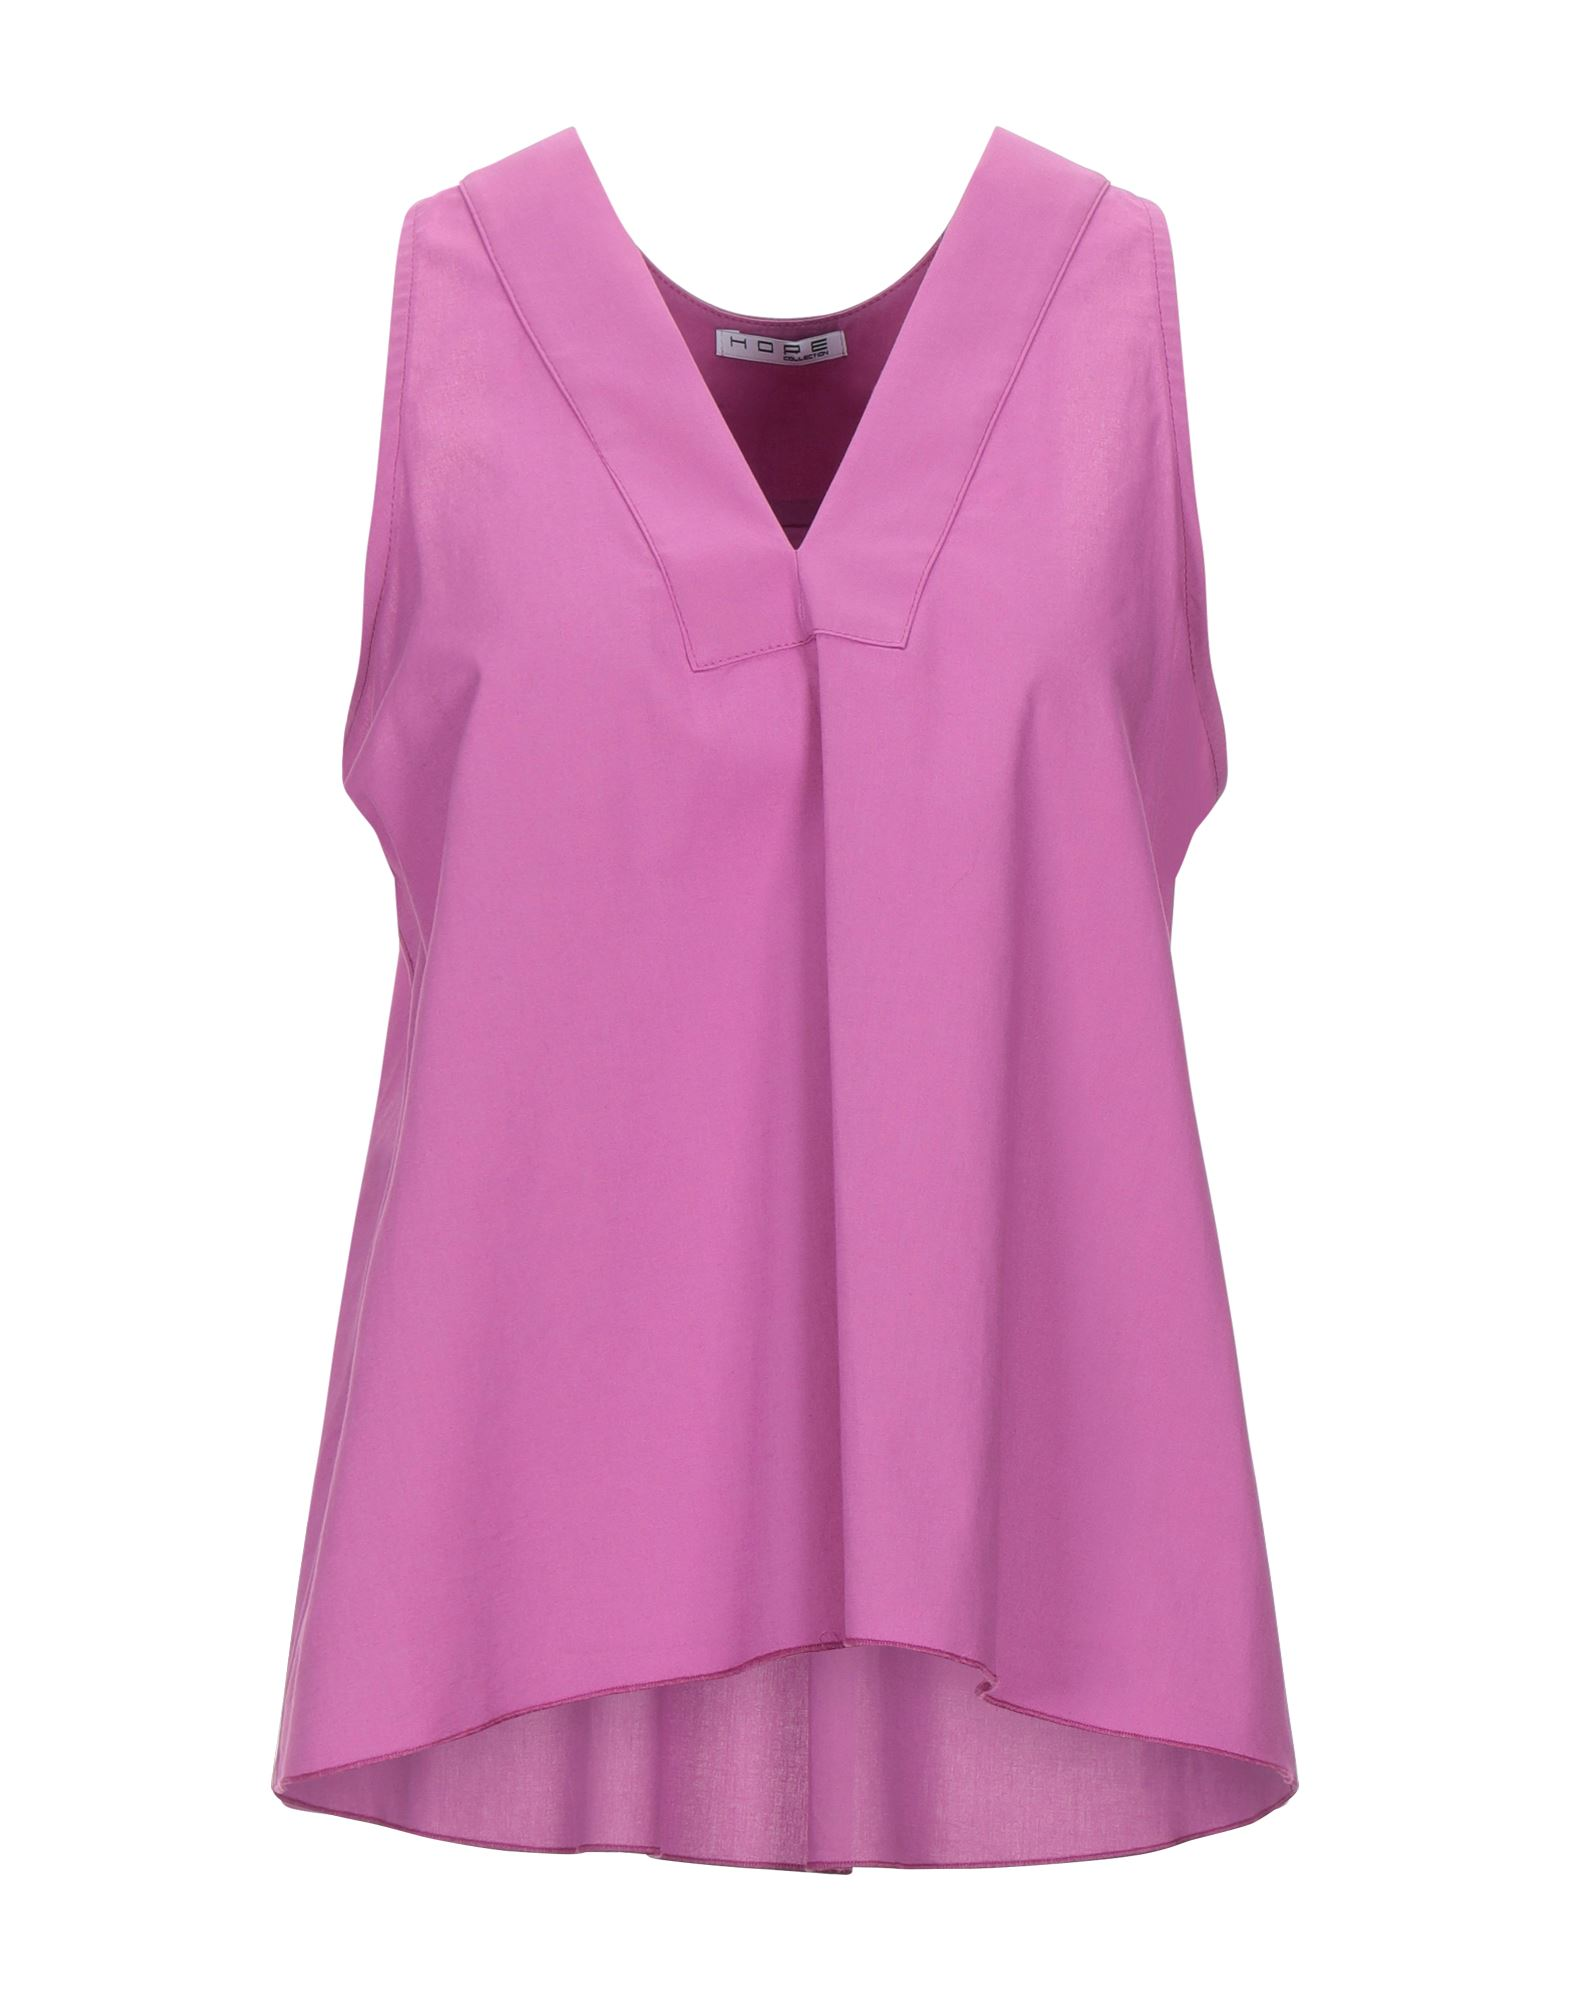 HOPE COLLECTION Tops - Item 12539933